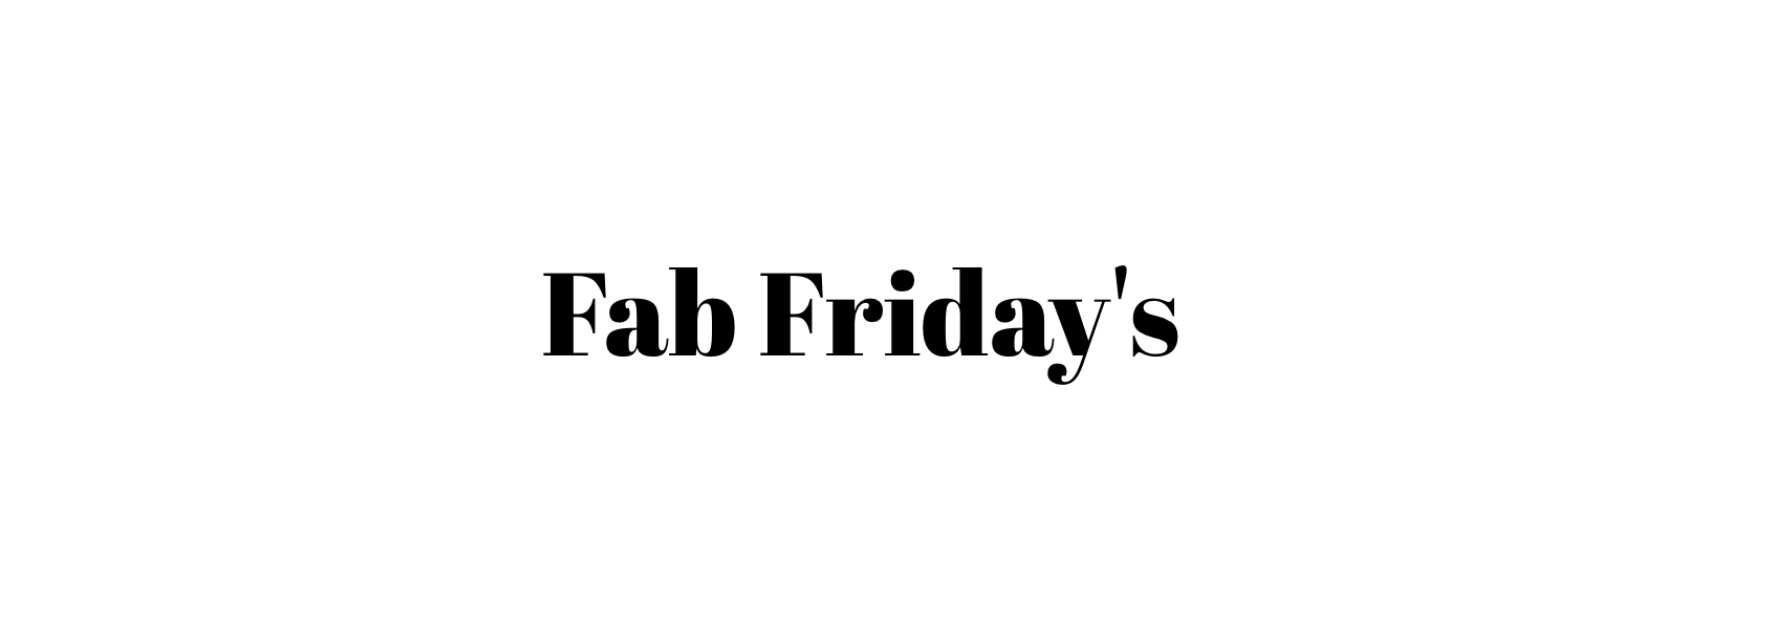 Fab Friday's